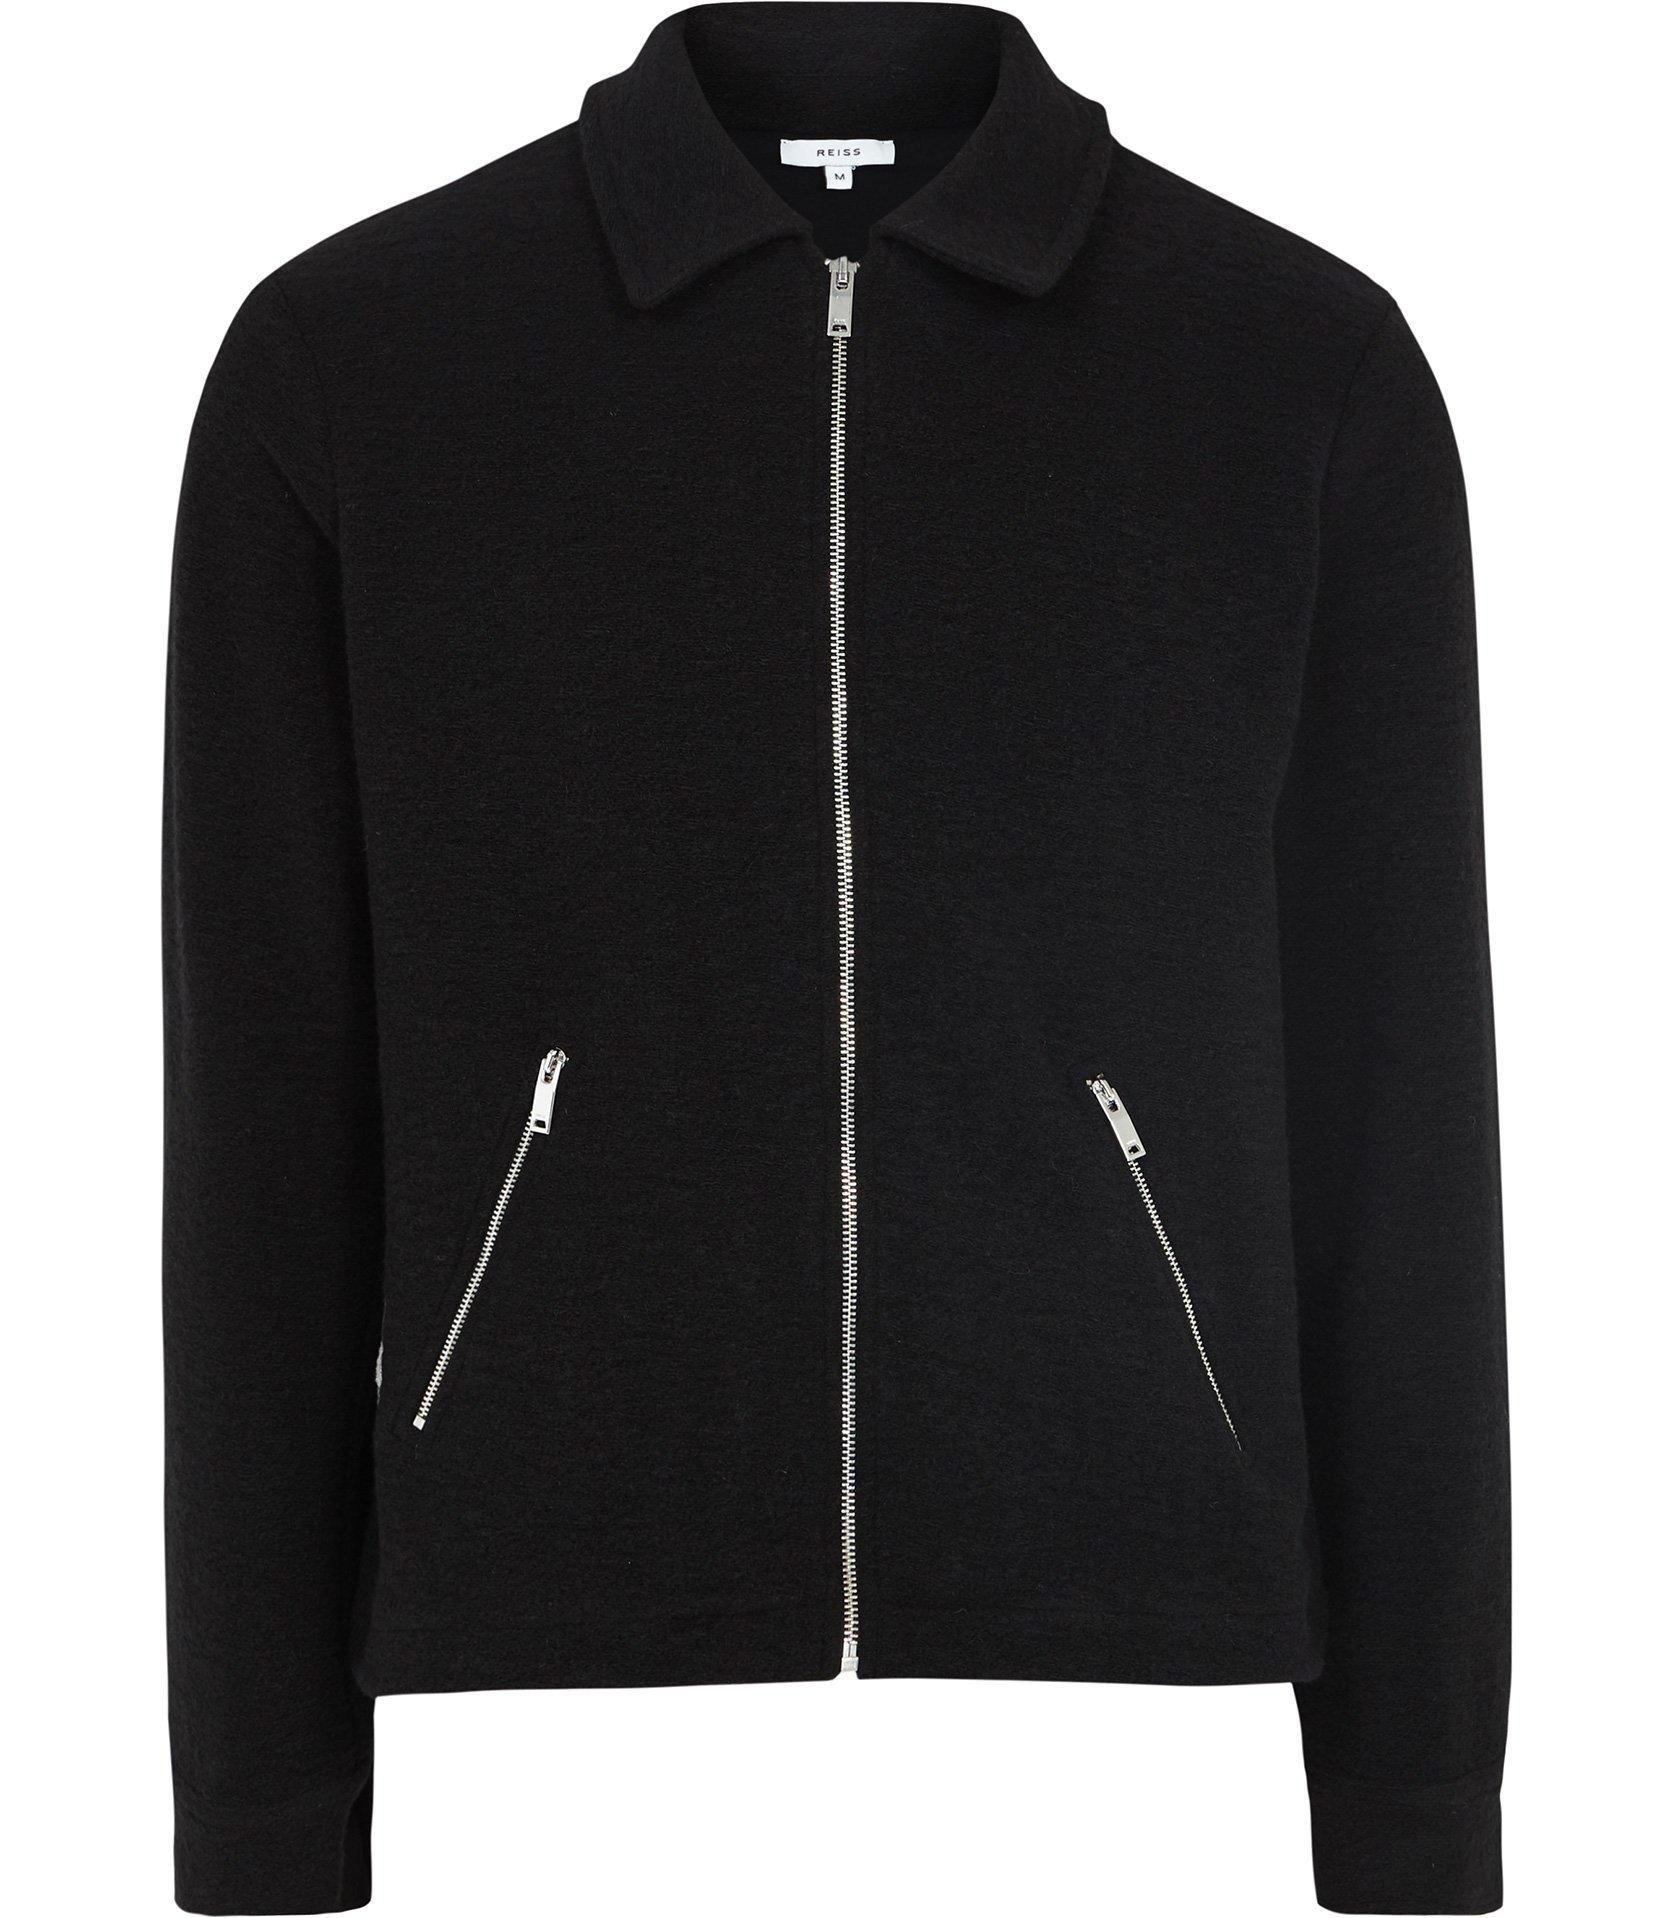 983aa3a1f462 Reiss - Black Cecil - Boucle Zip Through Jumper for Men - Lyst. View  fullscreen